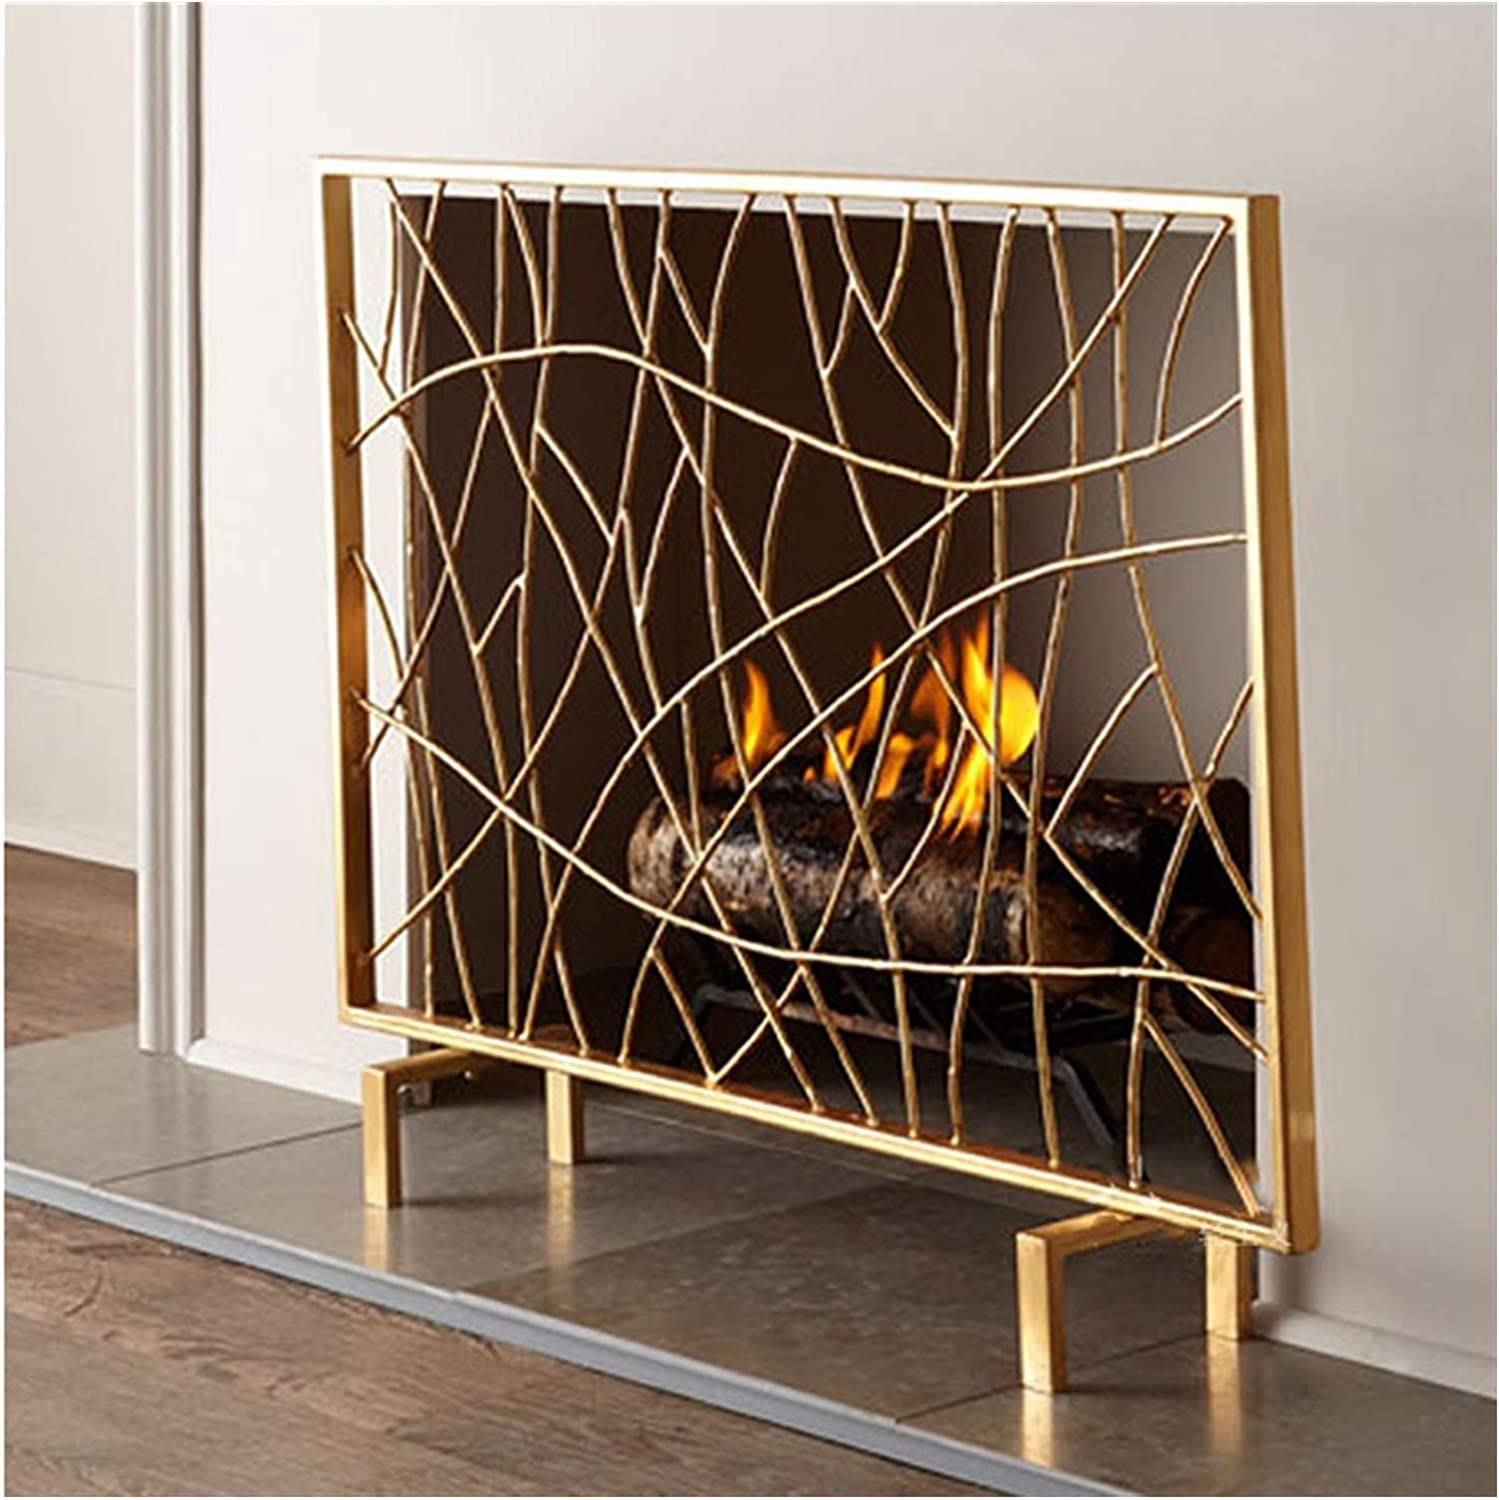 Large-scale sale barture Freestanding Fireplace Screen Iron with Mesh security Stain Fire